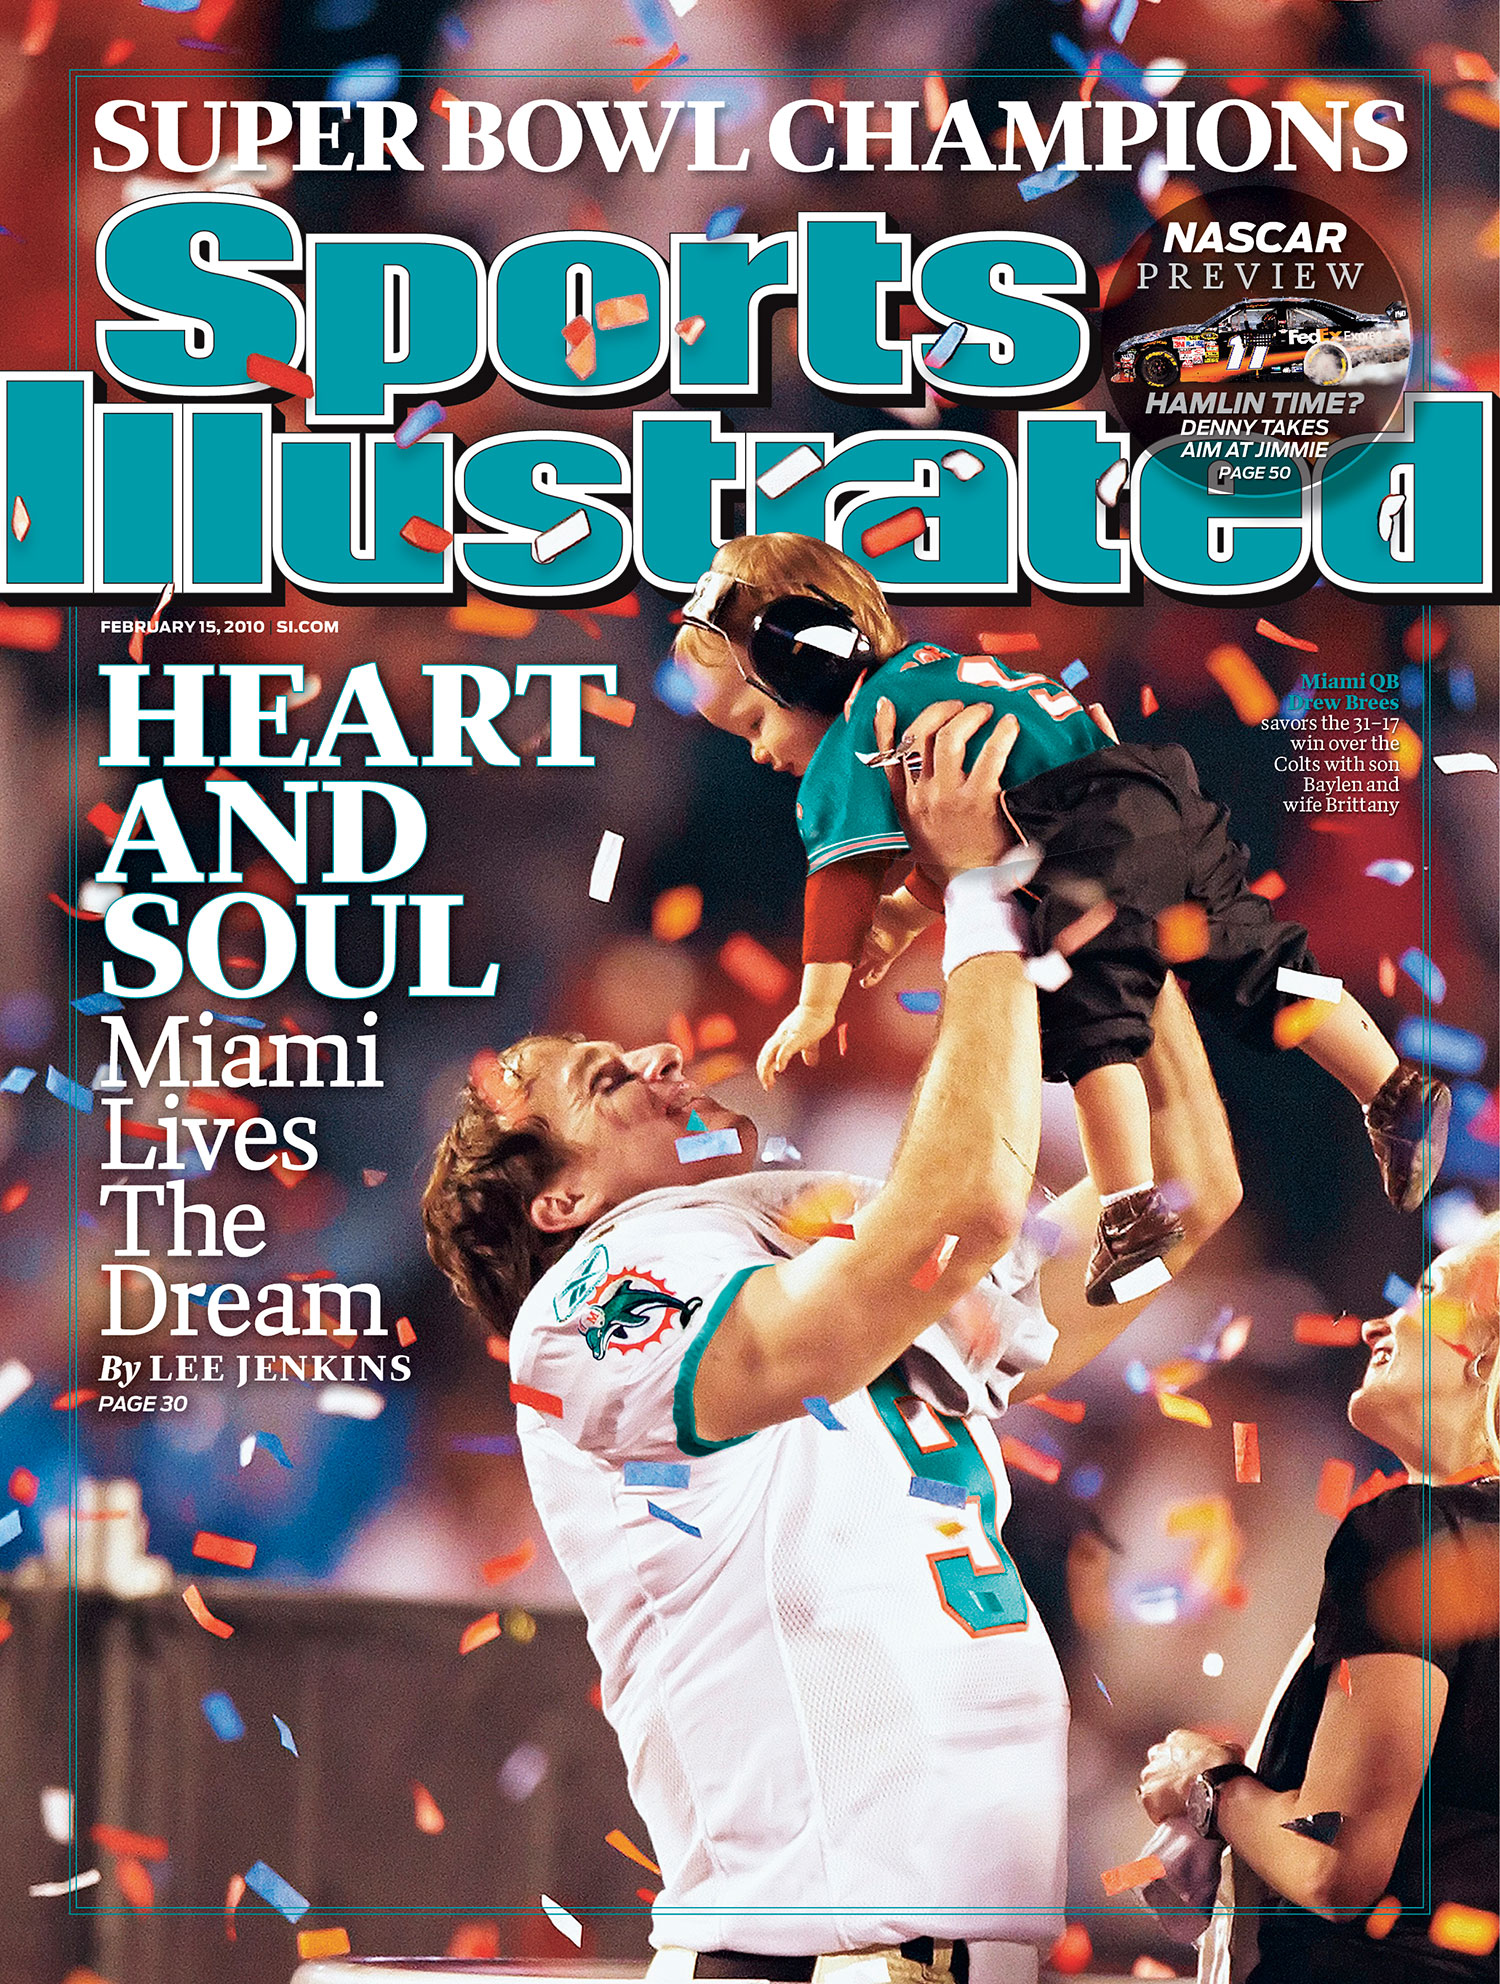 drew-brees-miami-dolphins-cover.jpg